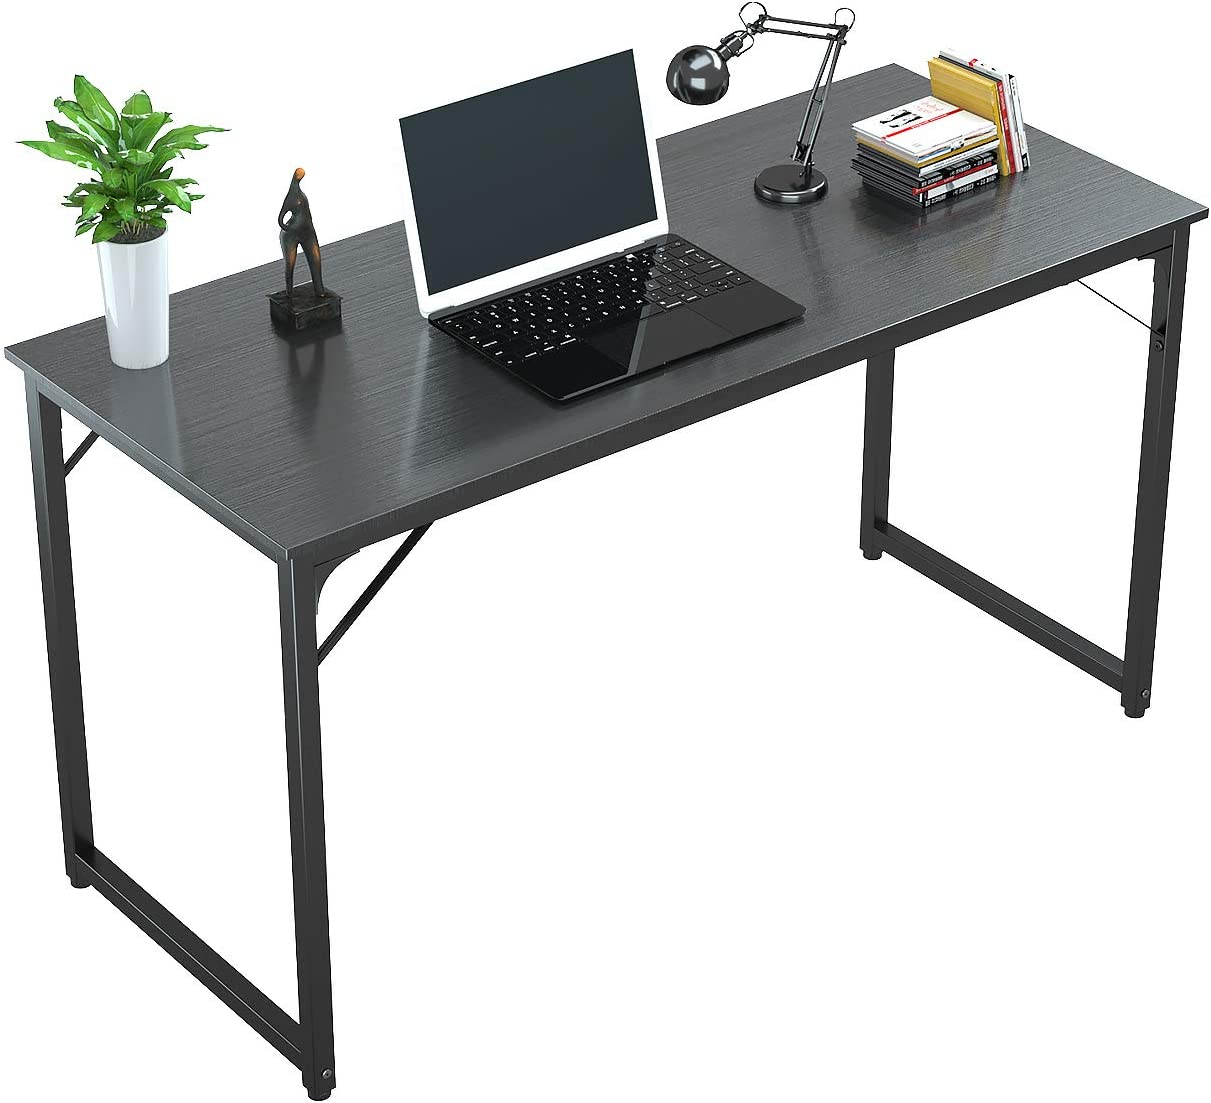 "Tycholite Computer Desk 47"" Modern Sturdy Office Desk PC Laptop Notebook Study Writing Table for Home Office Workstation, Black"